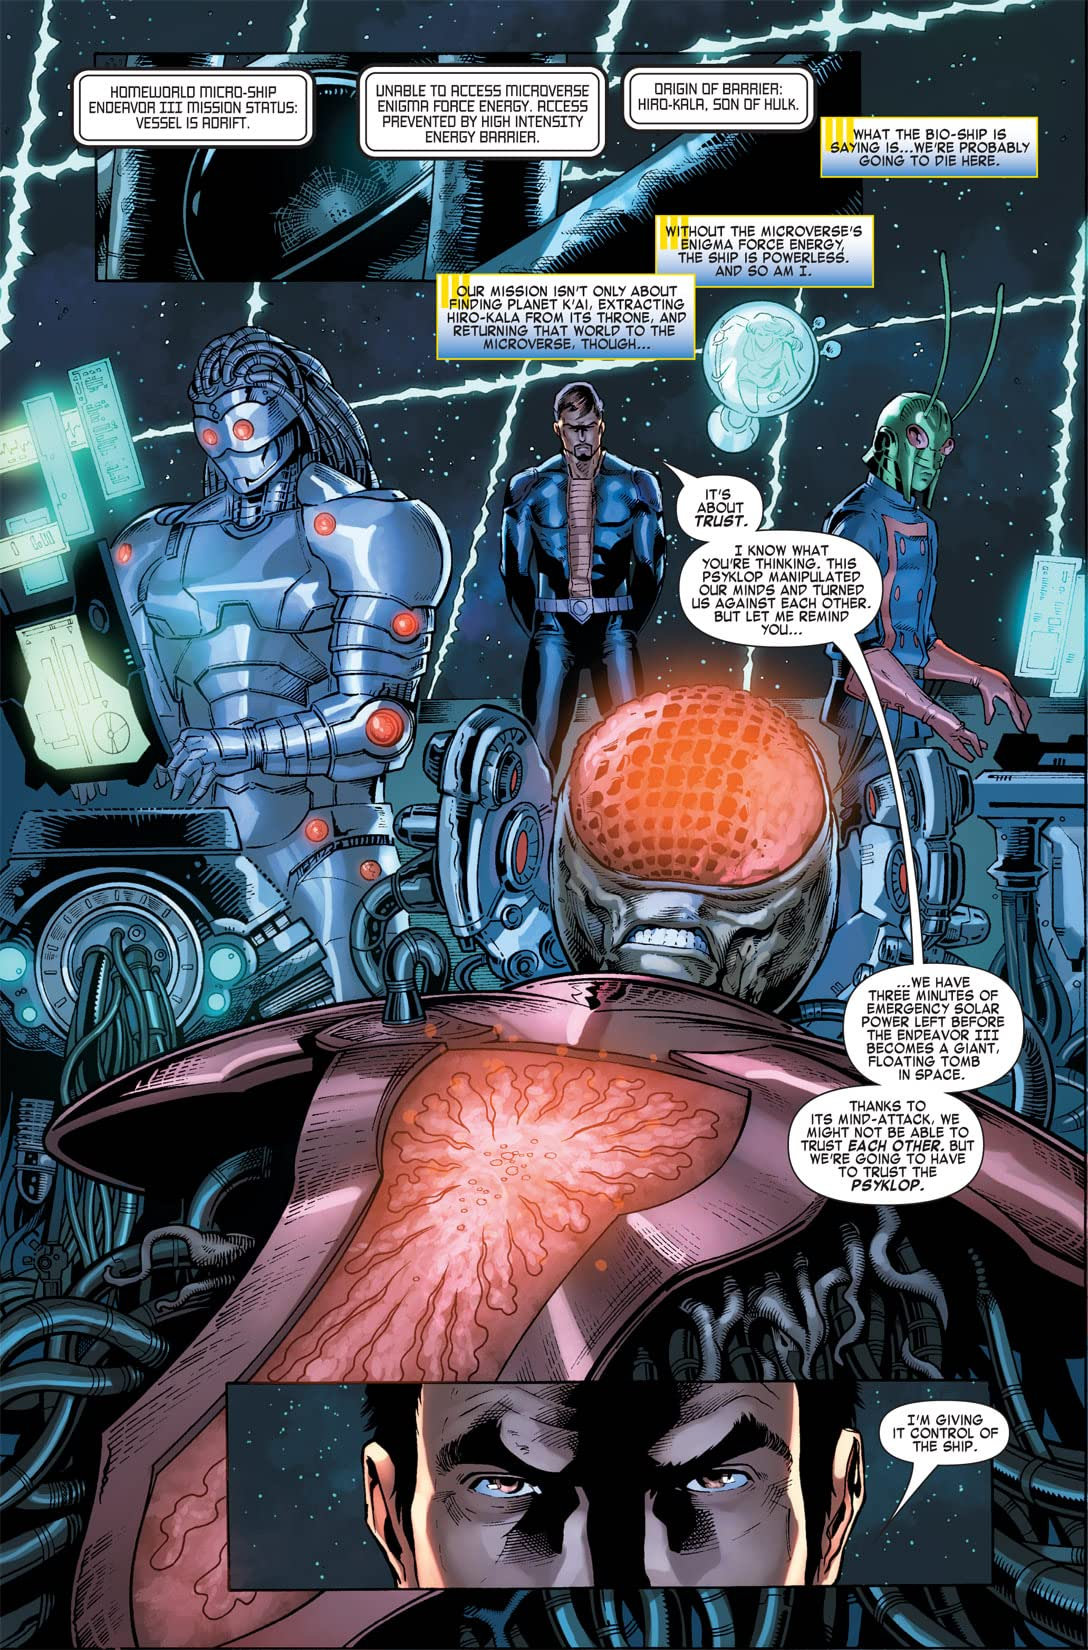 Microverse: The Enigma Force #2 (of 3)